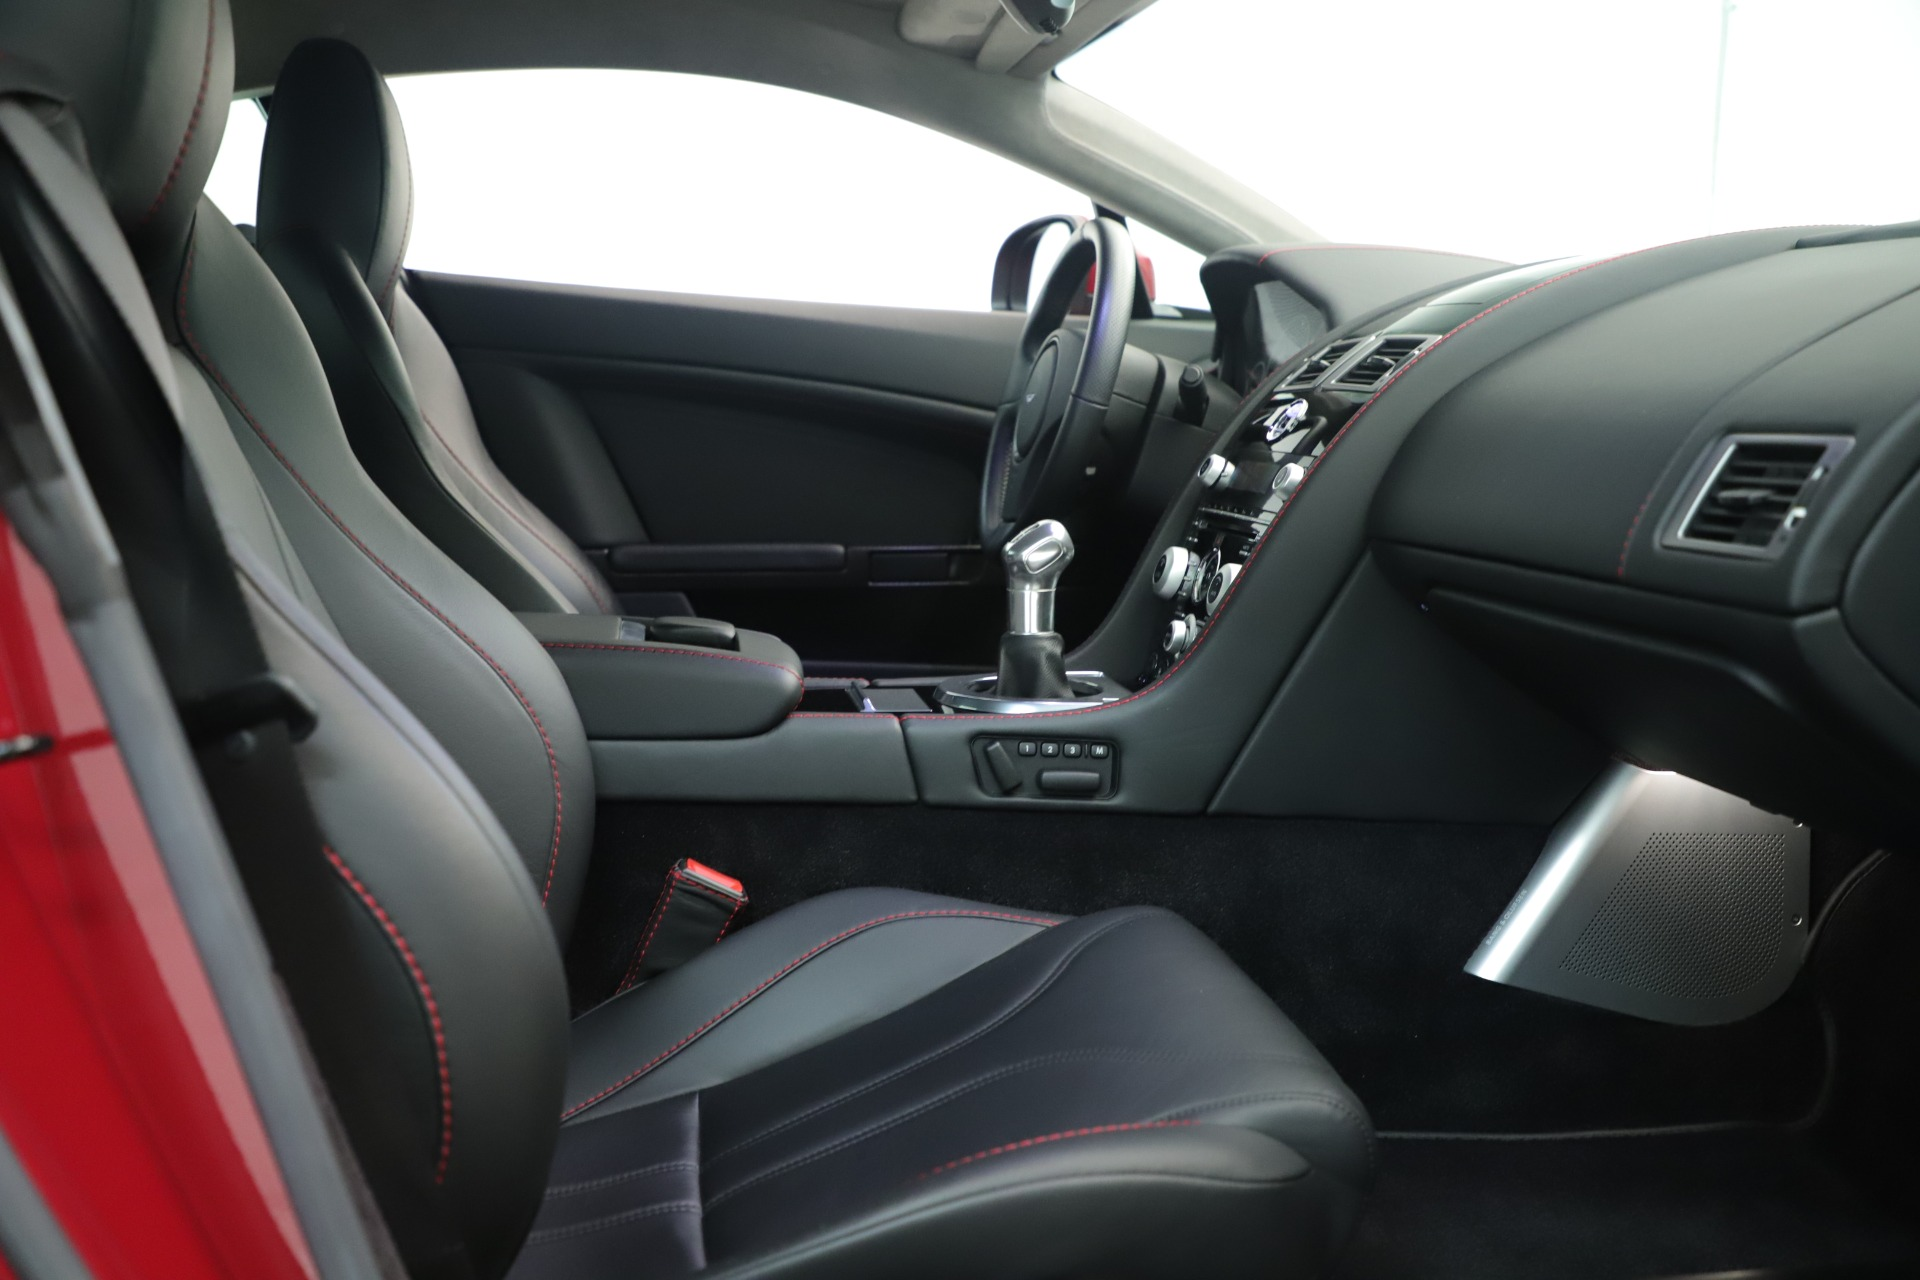 Used 2011 Aston Martin V12 Vantage Coupe For Sale In Greenwich, CT 3395_p27